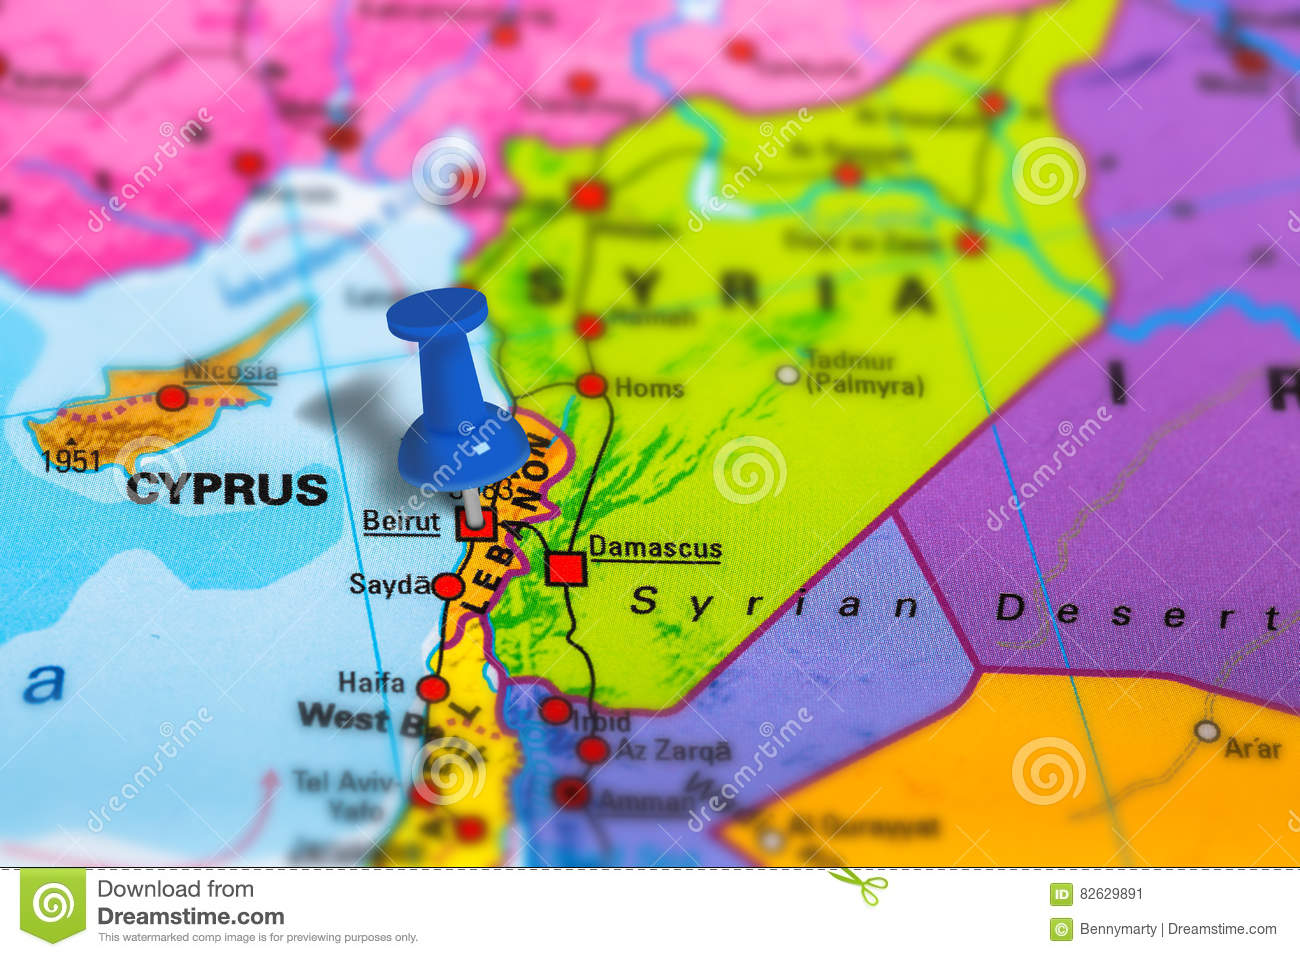 Beirut On Map on nicosia on map, doha on map, zagros mountains on map, cairo on map, baghdad on map, amman on map, west bank on map, kabul on map, muscat on map, tel aviv on map, damascus on map, manama on map, middle east map, riyadh on map, istanbul on map, tehran on map, sanaa on map, dubai on map, lebanon on map, harare on map,